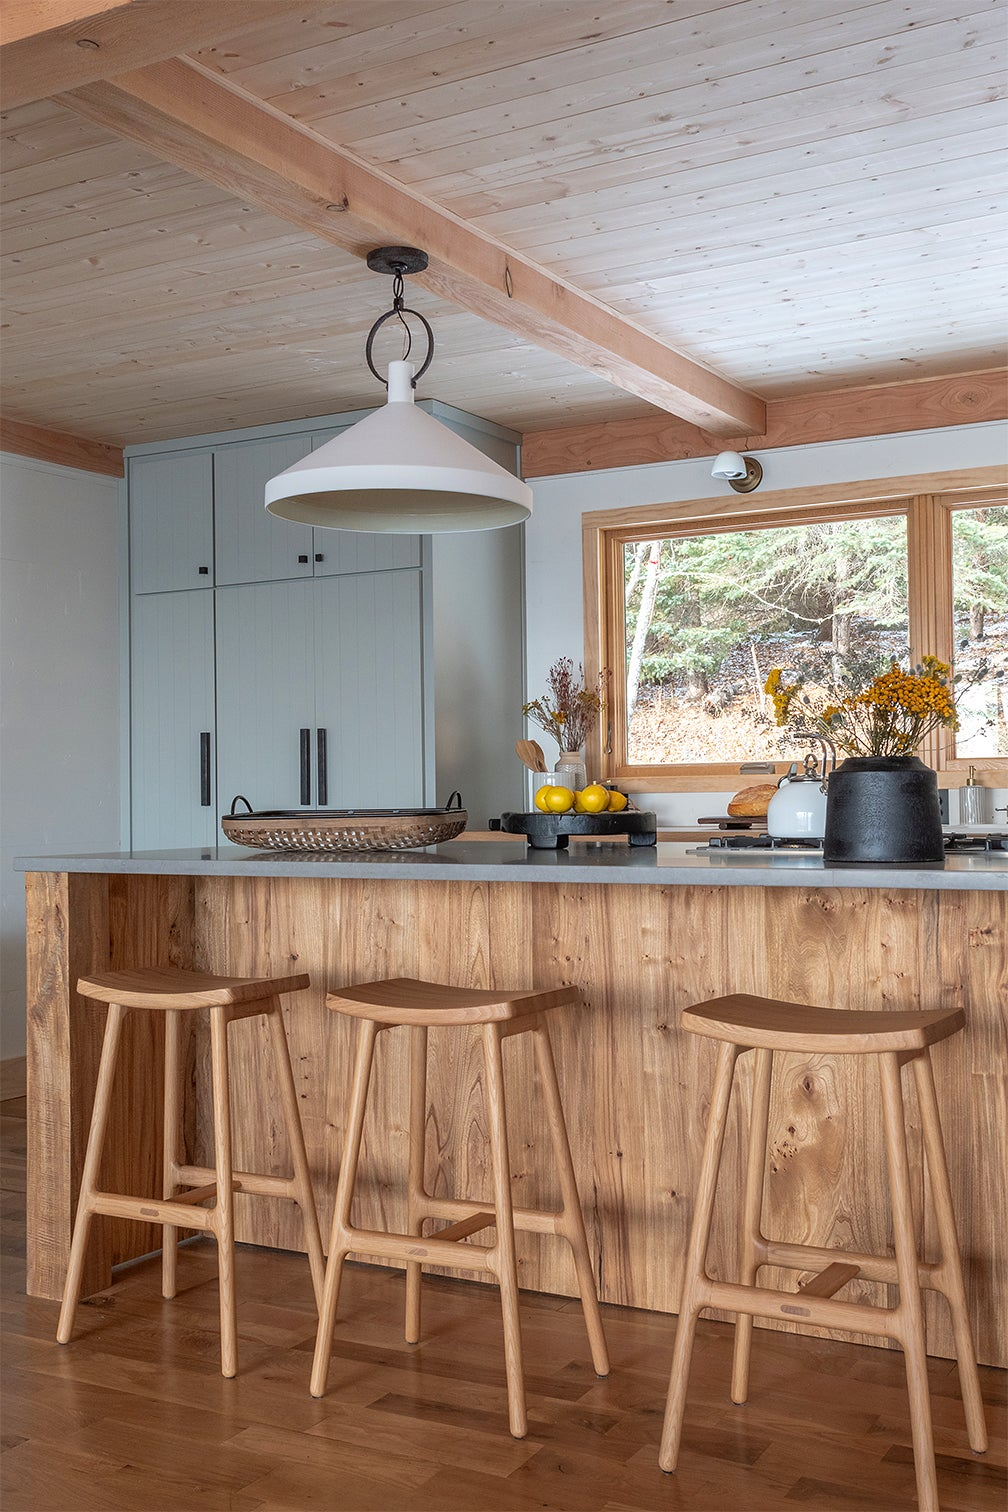 wood kitchen island with pale blue cabinets